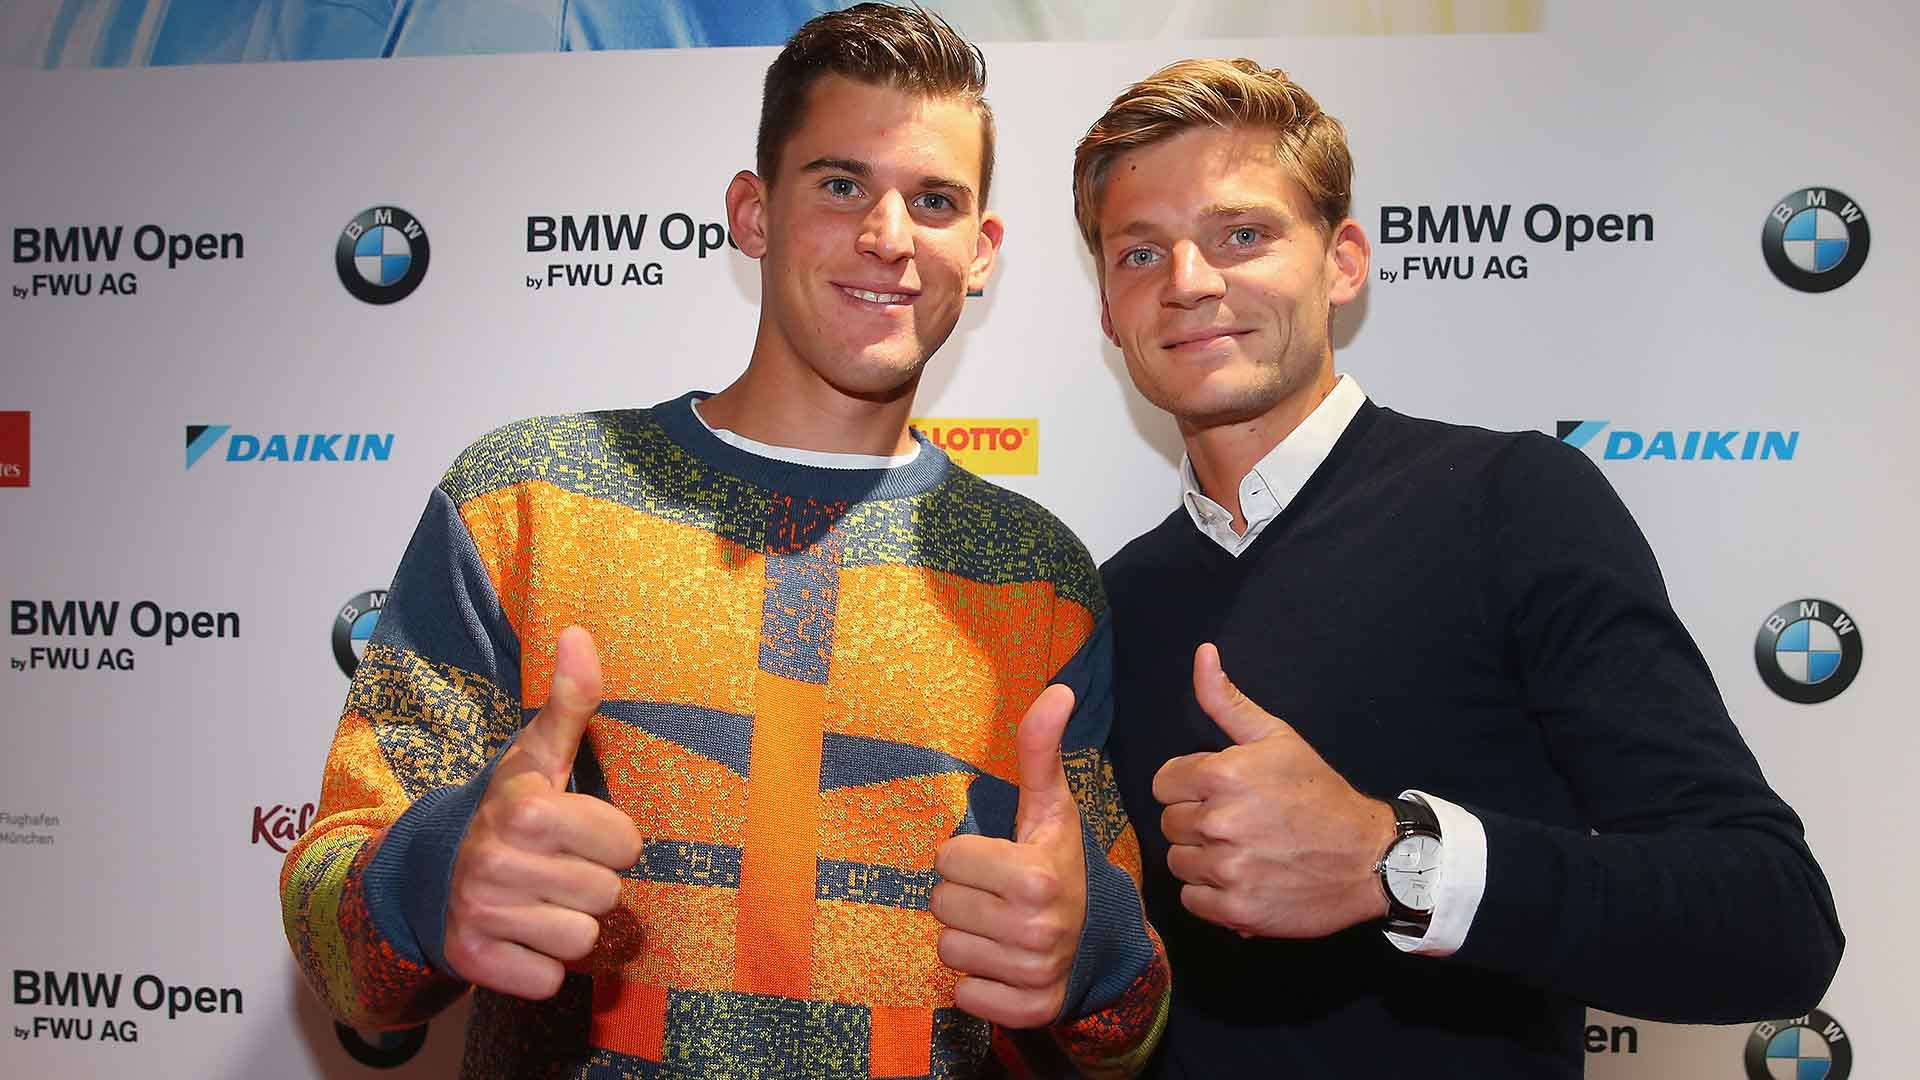 Thiem Goffin Munich 2016 Players Party